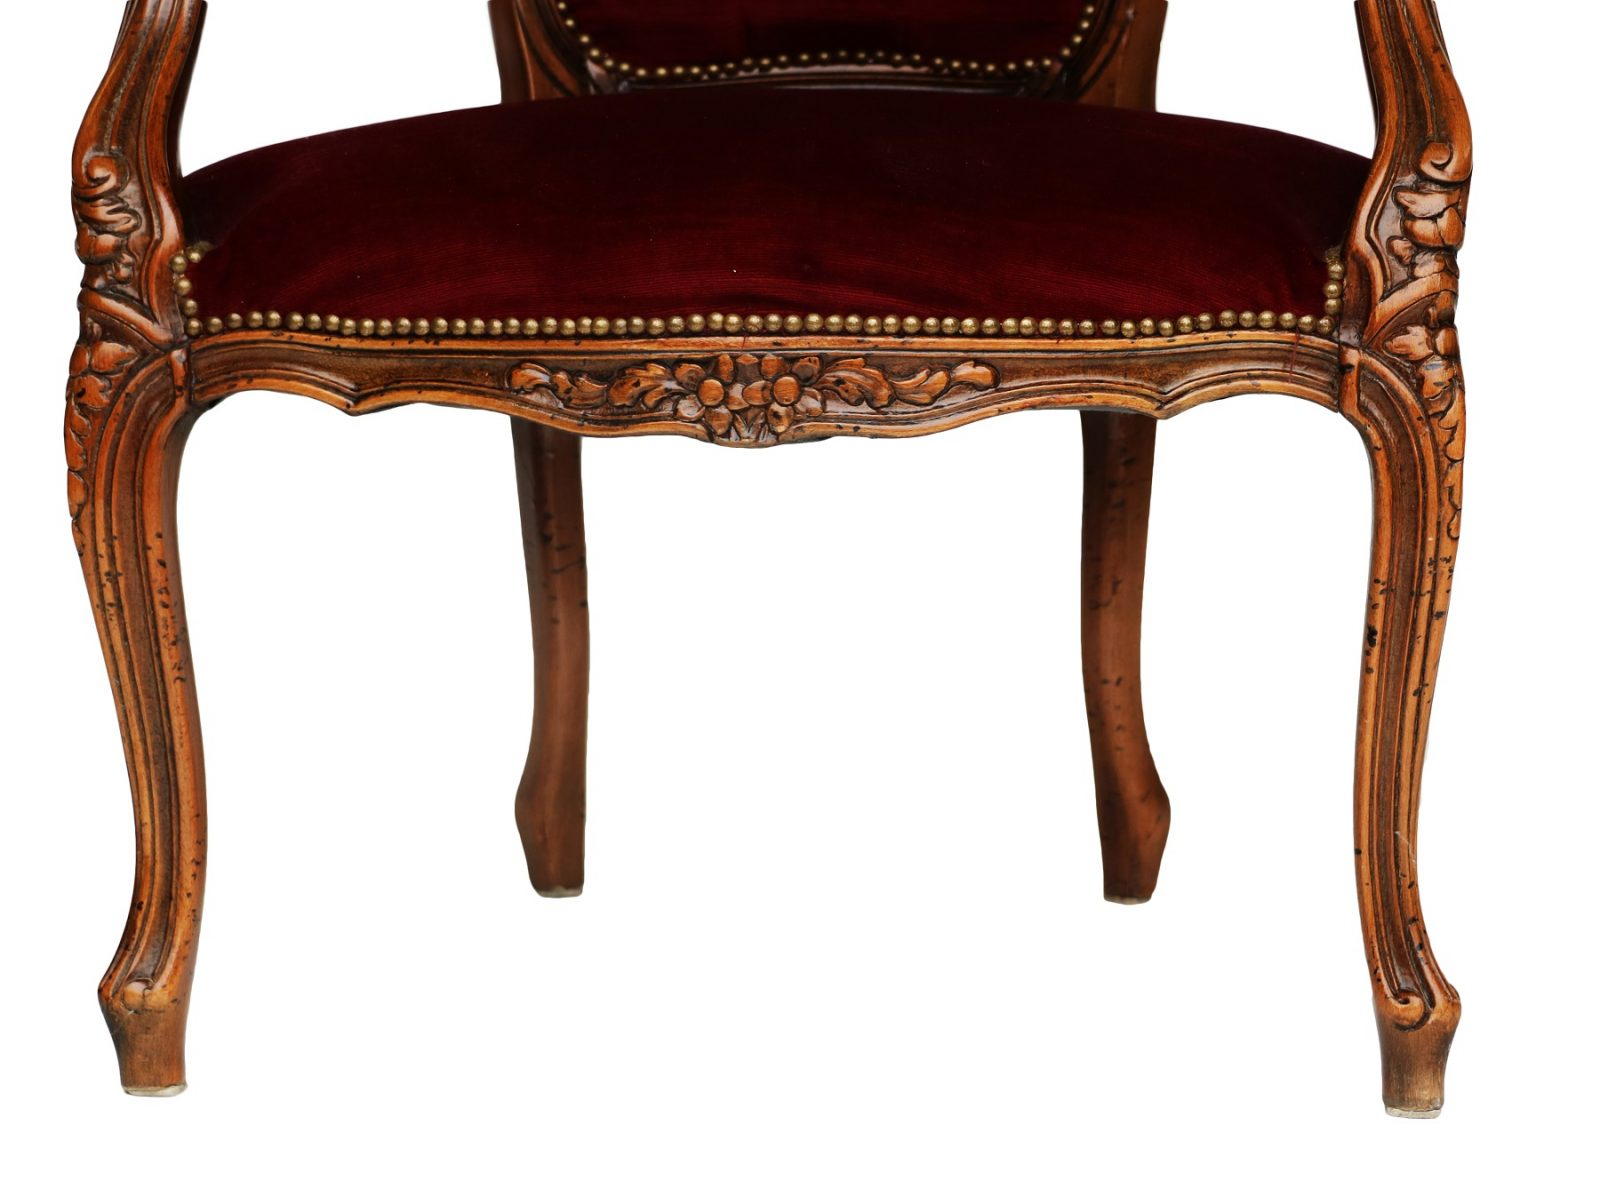 louis xv style walnut and upholstered fauteuil armchair